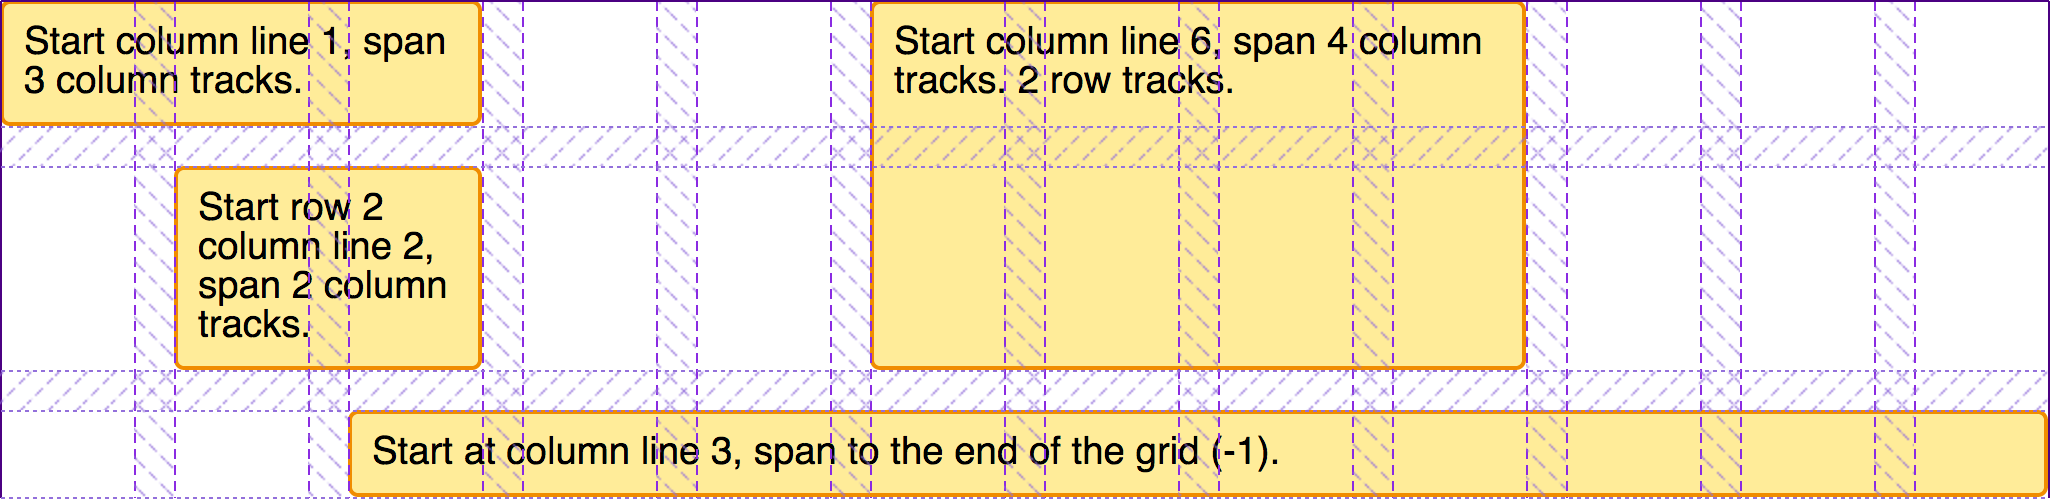 Showing the items placed on the grid with grid tracks highlighted.